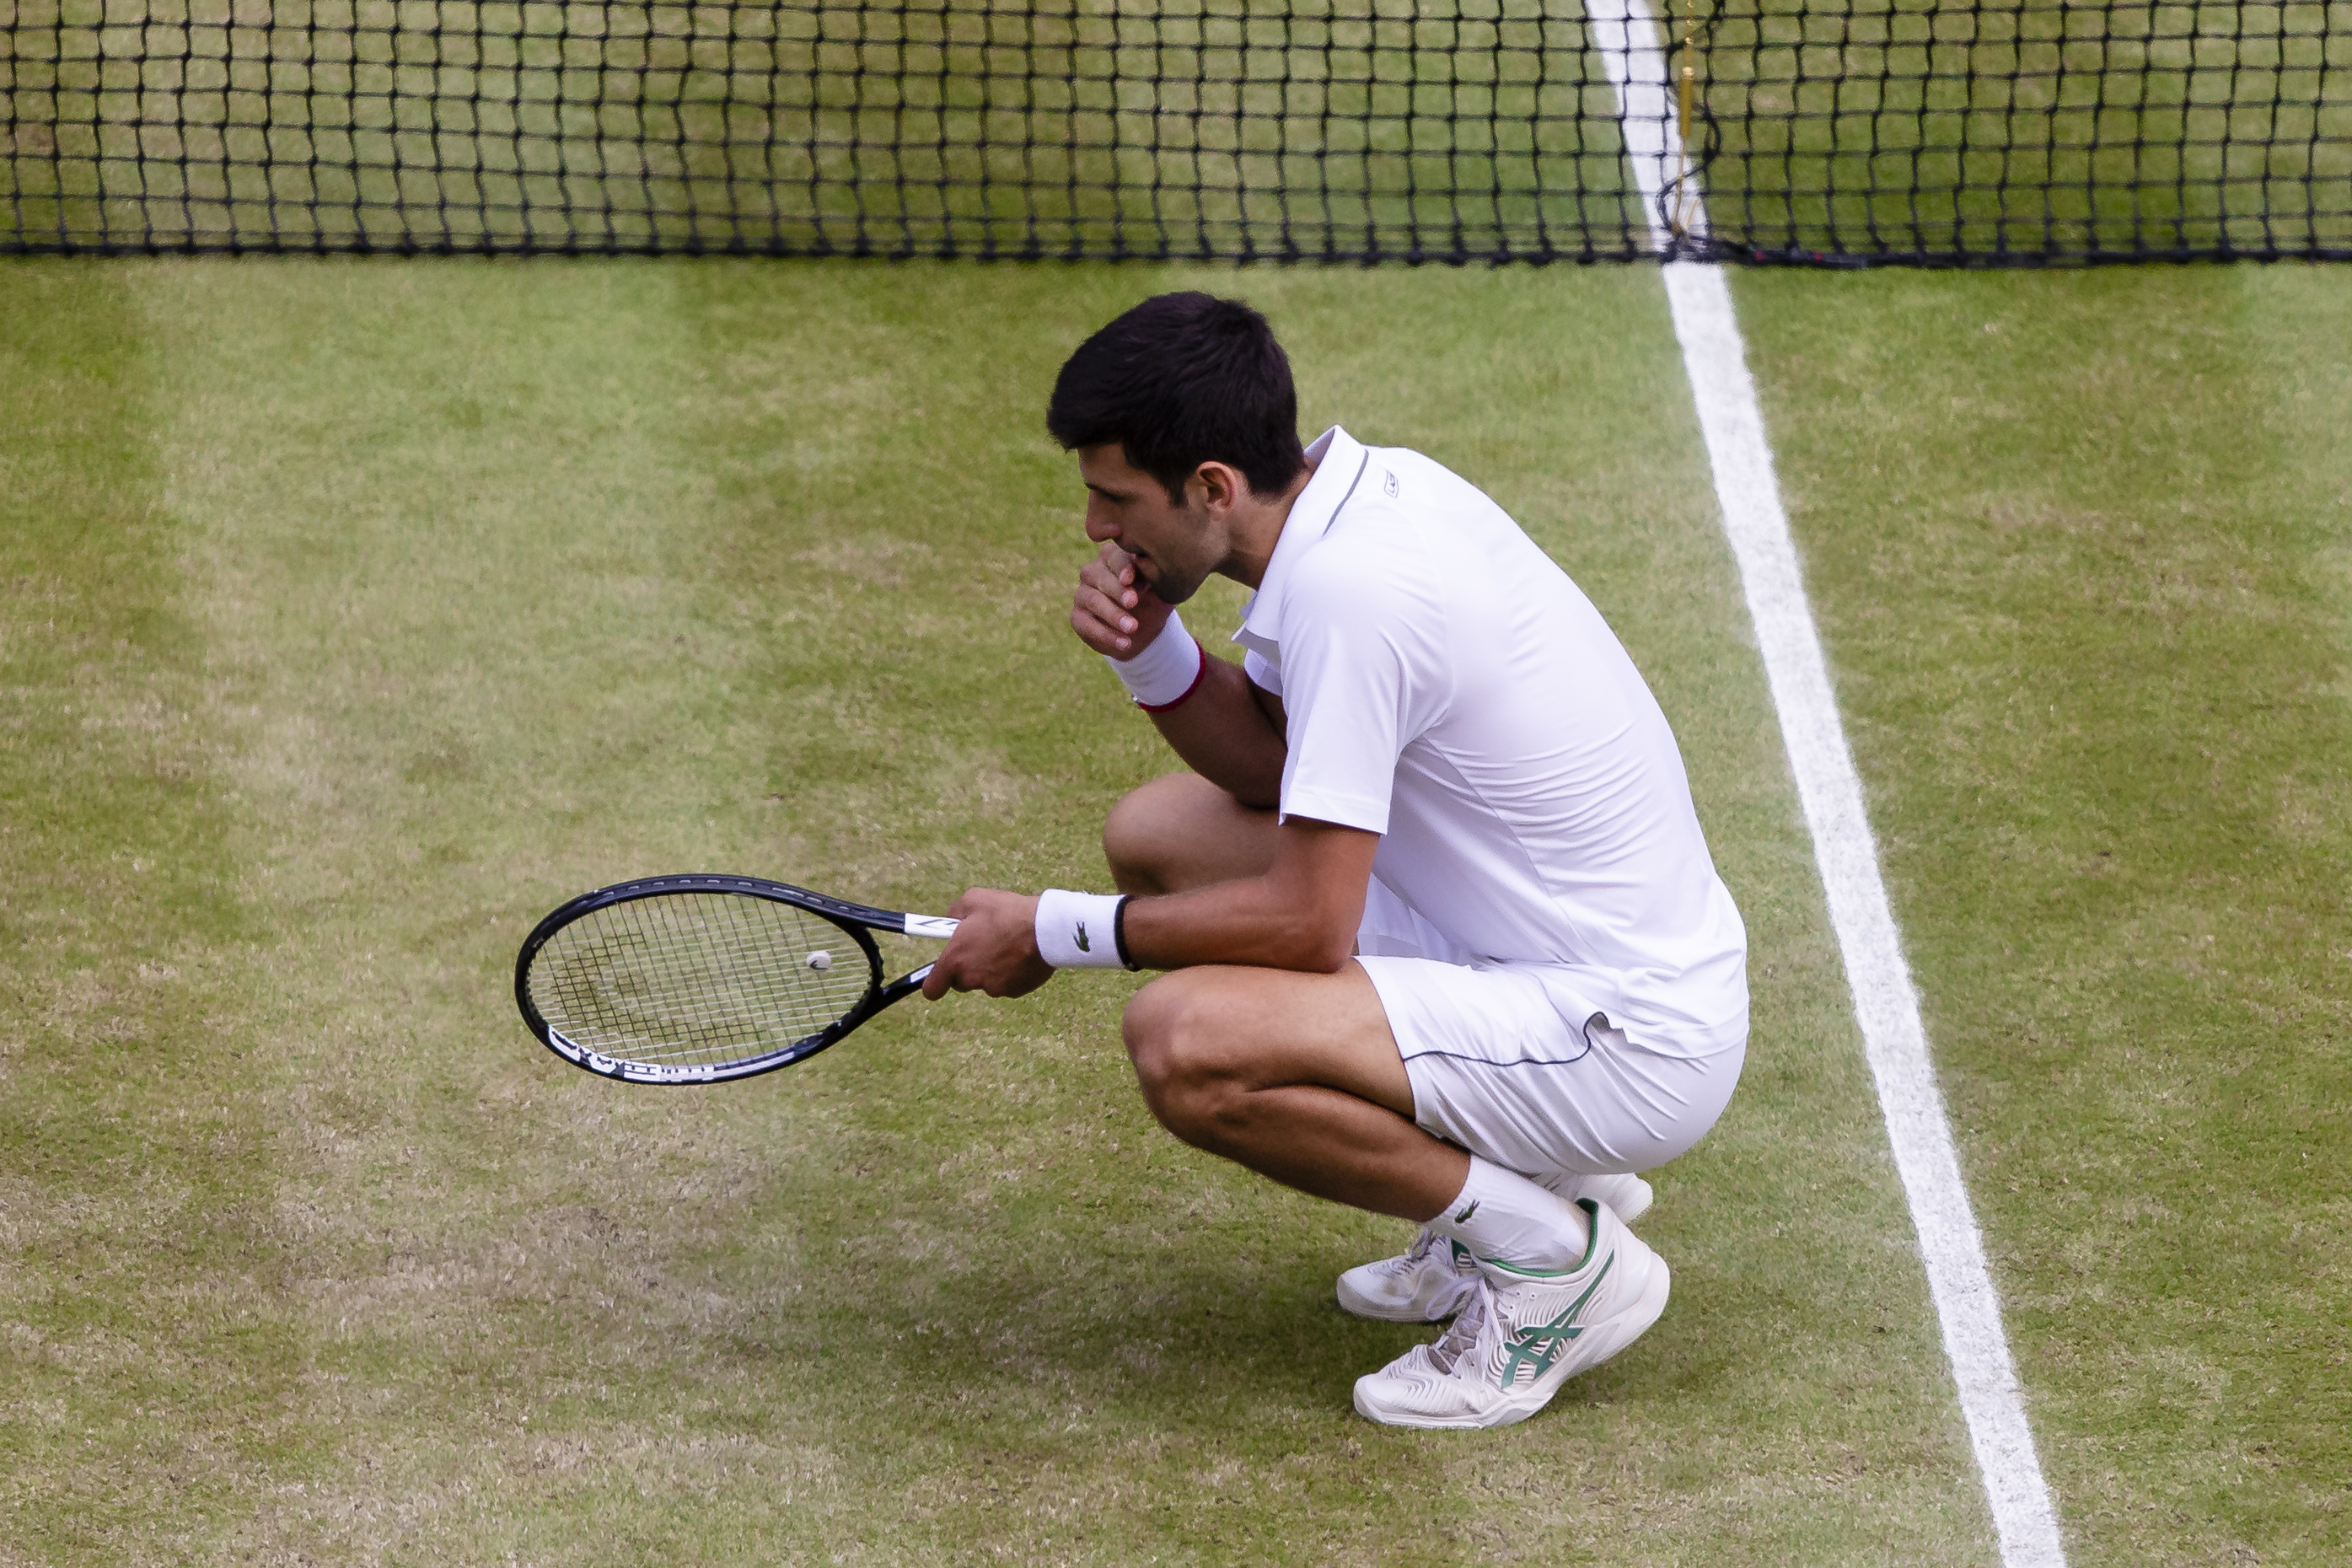 Novak Djokovic Ate Grass To Celebrate His Wimbledon Win Time